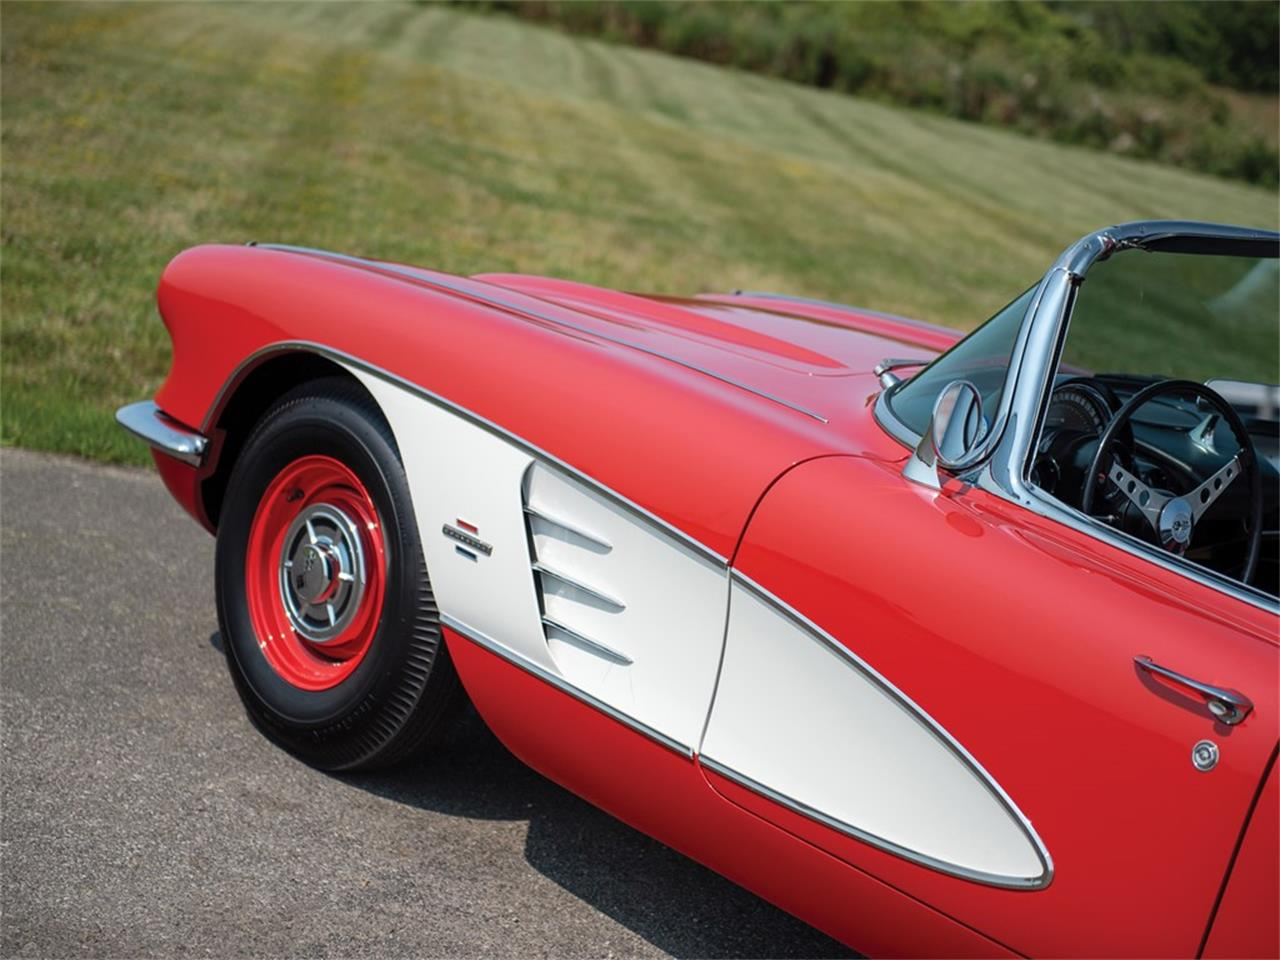 1961 Chevrolet Corvette (CC-1321690) for sale in Palm Beach, Florida